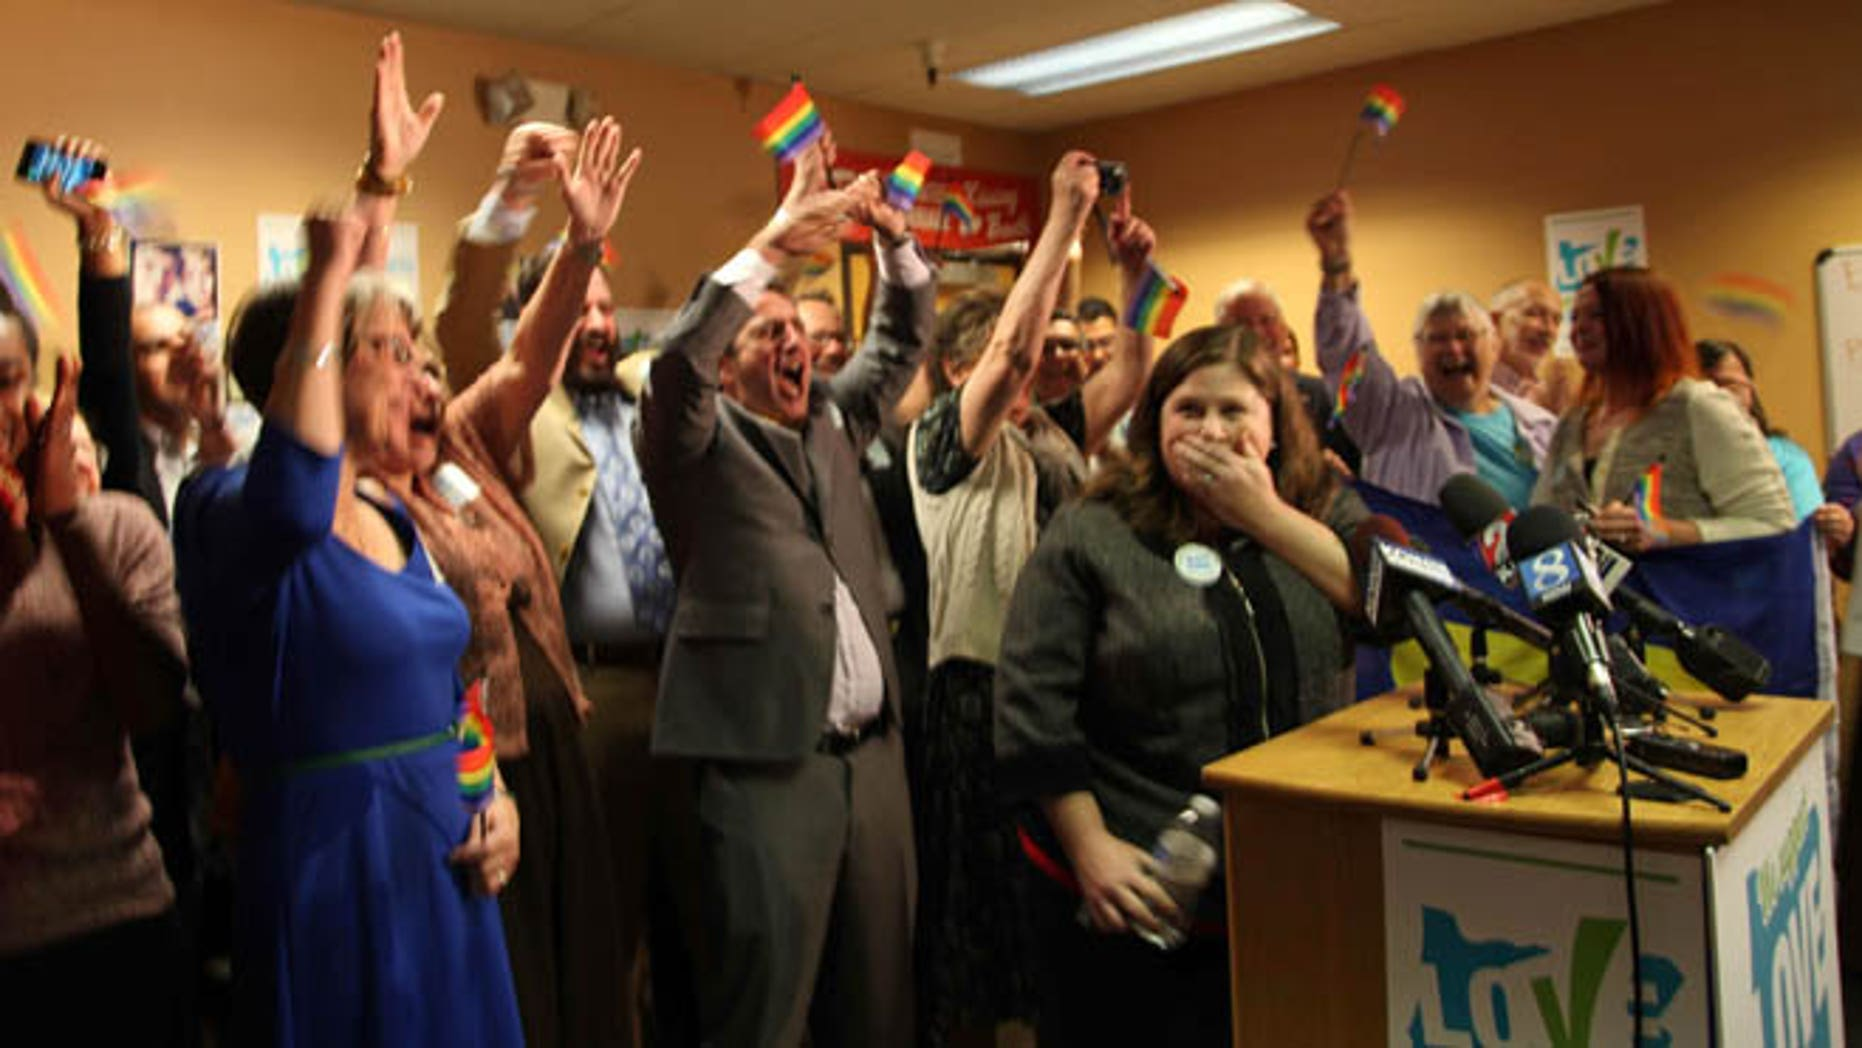 May 19, 2014: Gay and lesbian couples and their supporters react to the news of a federal judge striking down Oregon's ban on same-sex marriage, in Portland, Ore.